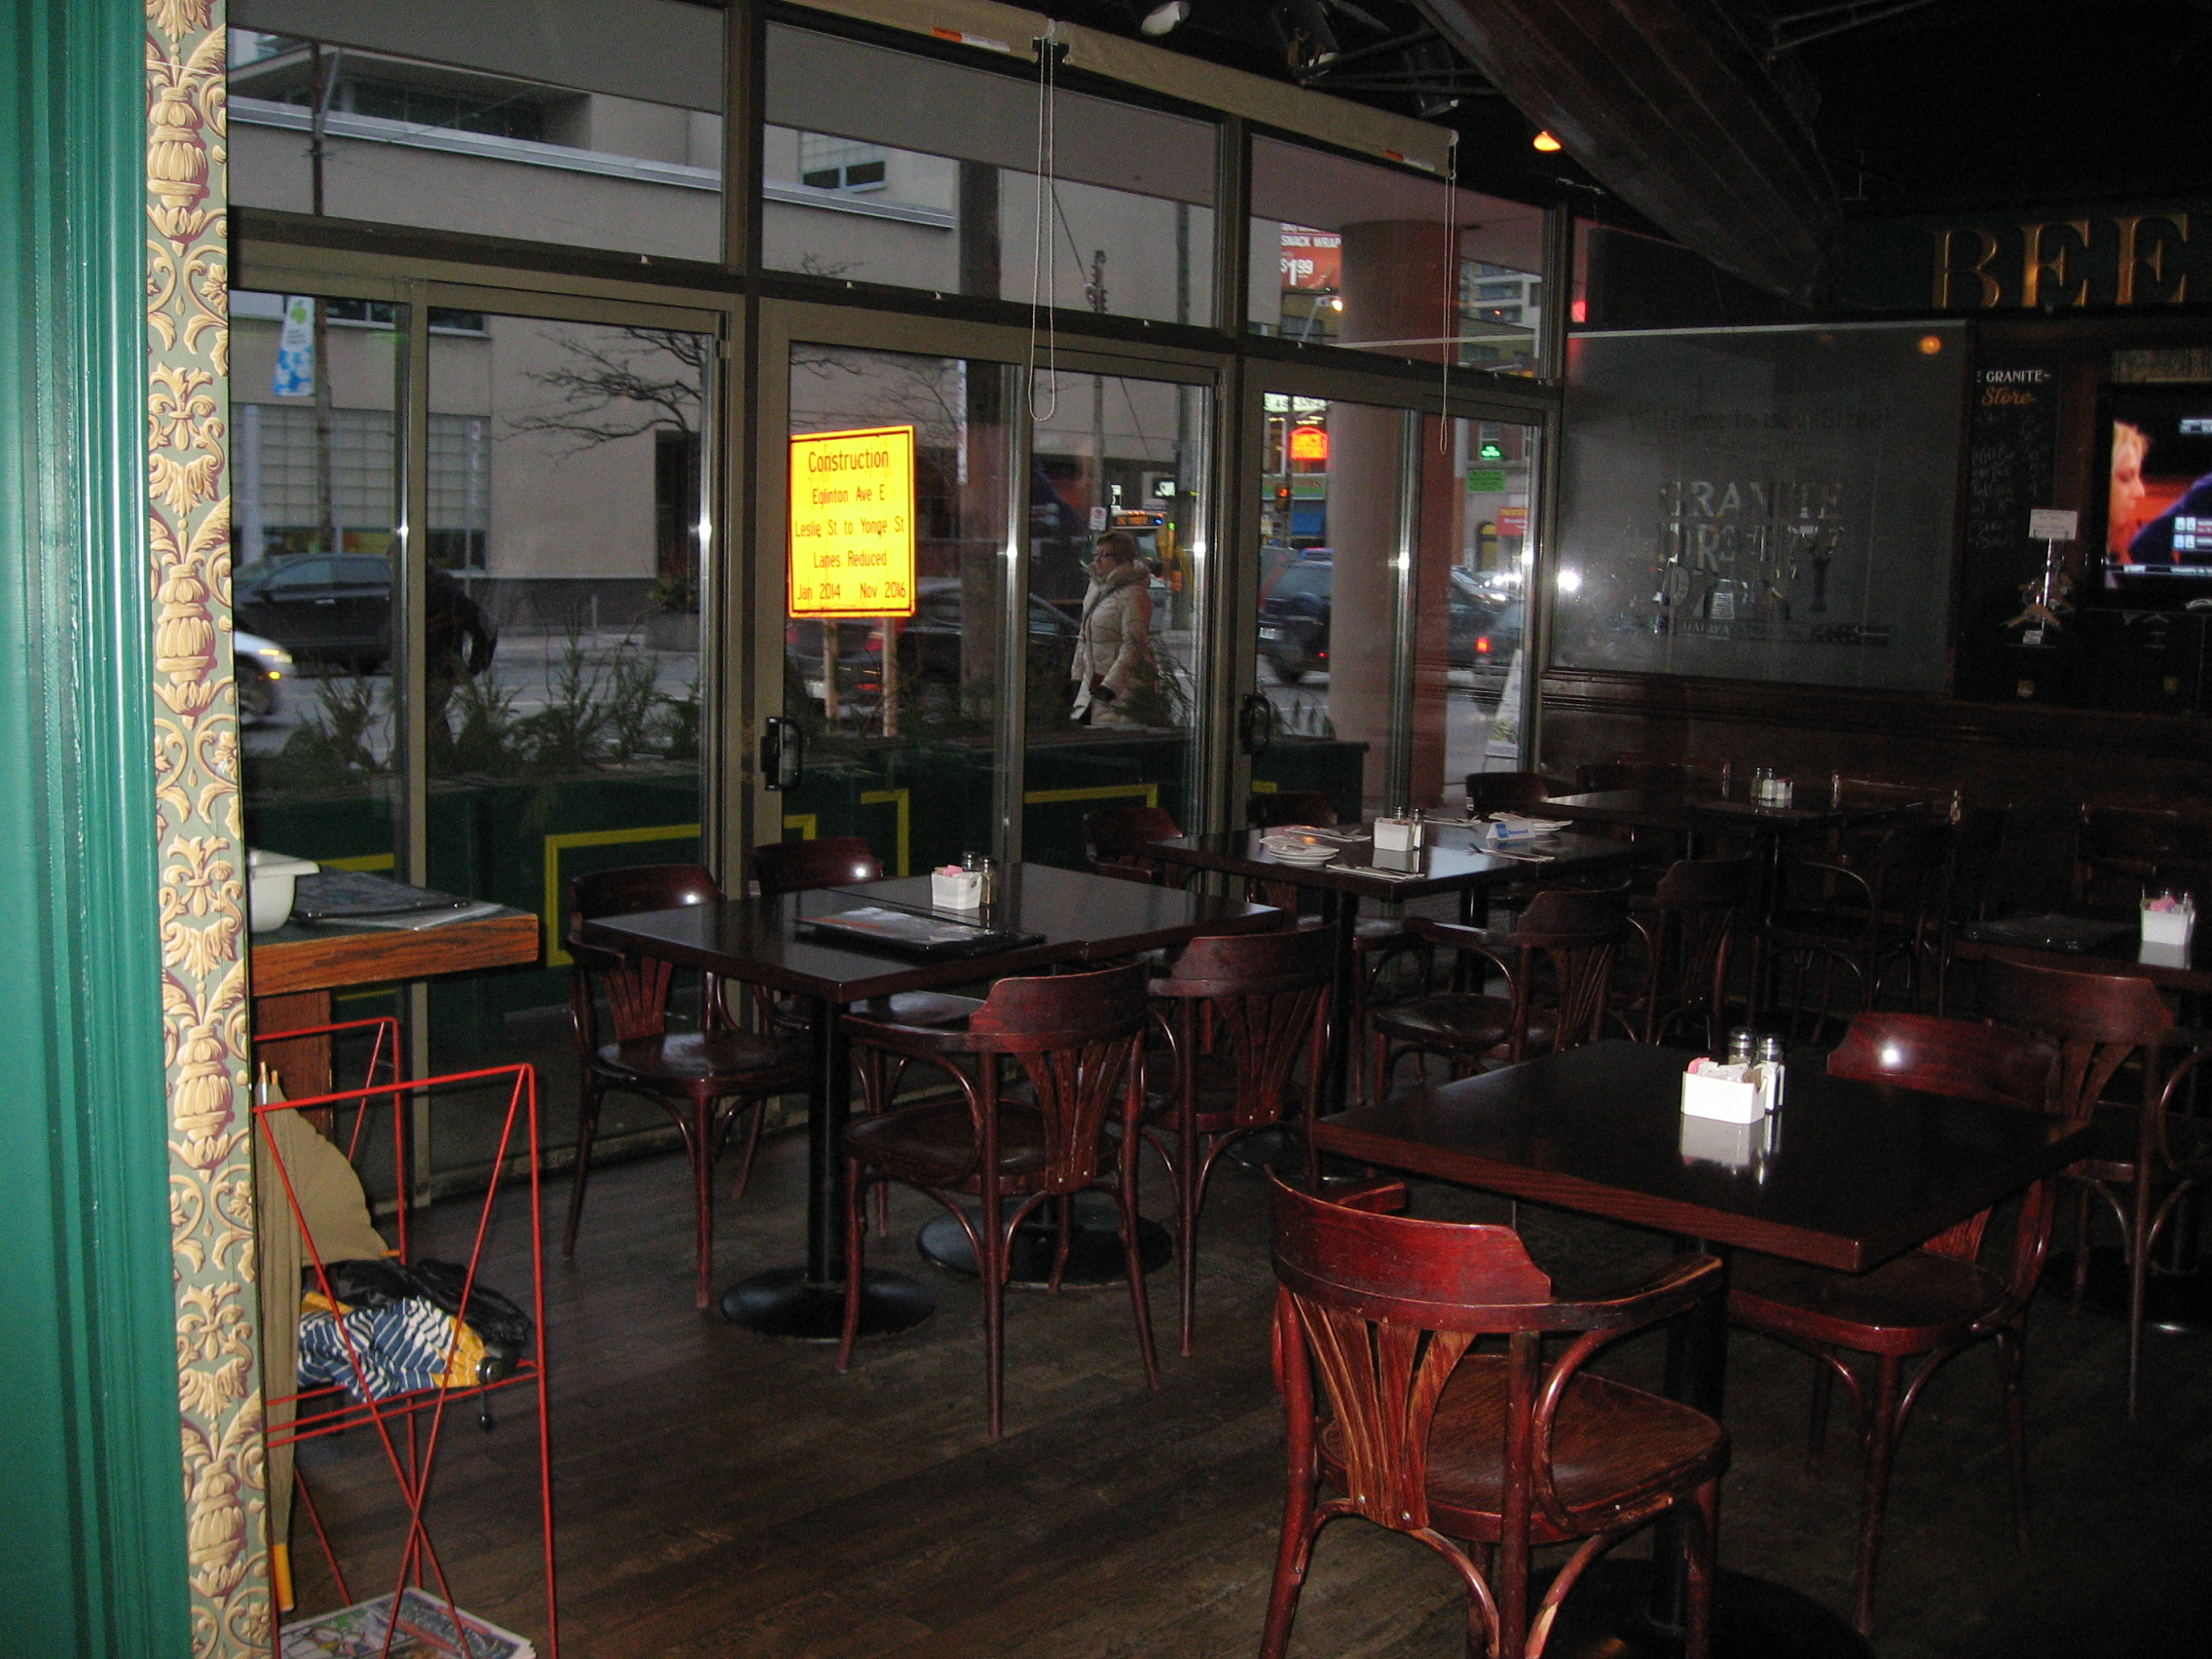 Image of interior of accessible restaurant.